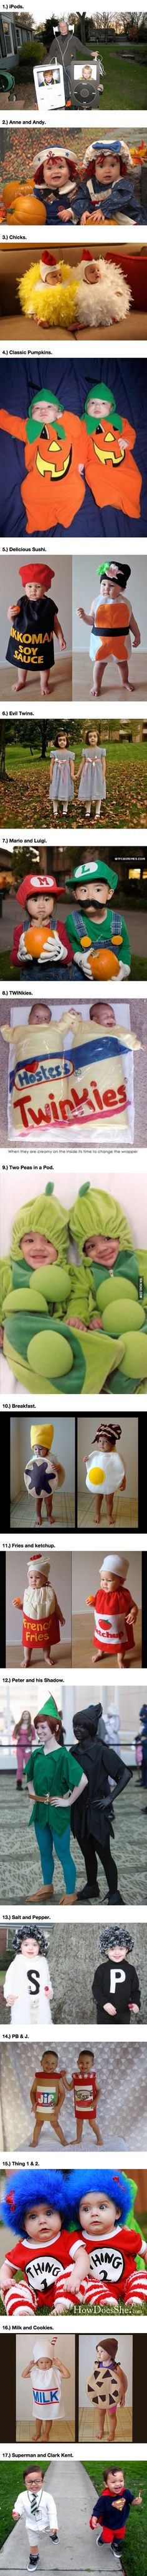 Twins Can Do The Coolest Things On Halloween...And These 17 Awesome Pairs Prove It.